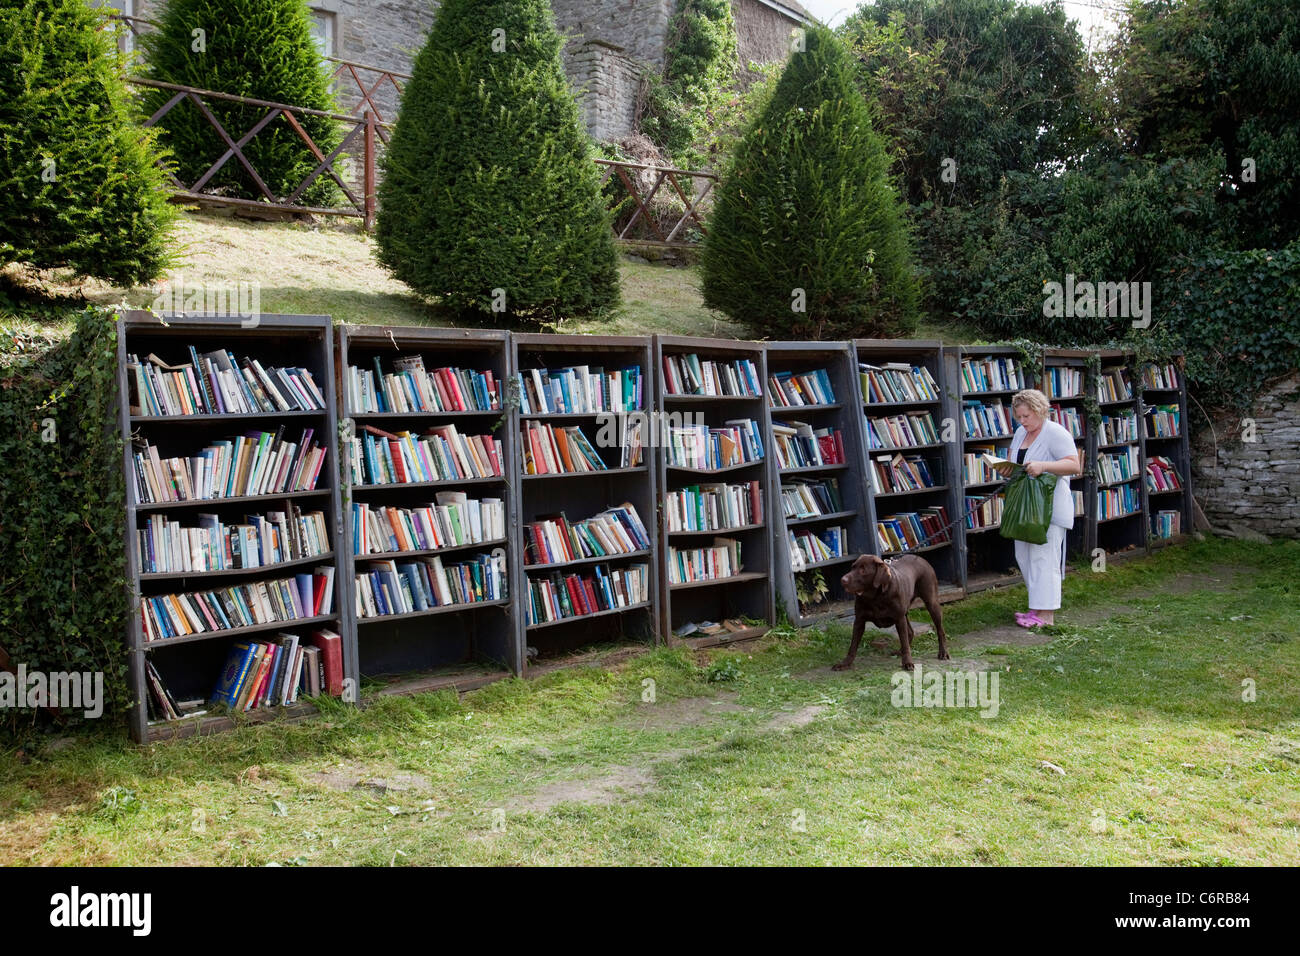 A woman browsing at an honesty bookshop in the grounds of Hay Castle in Hay-On-Wye, UK - Stock Image